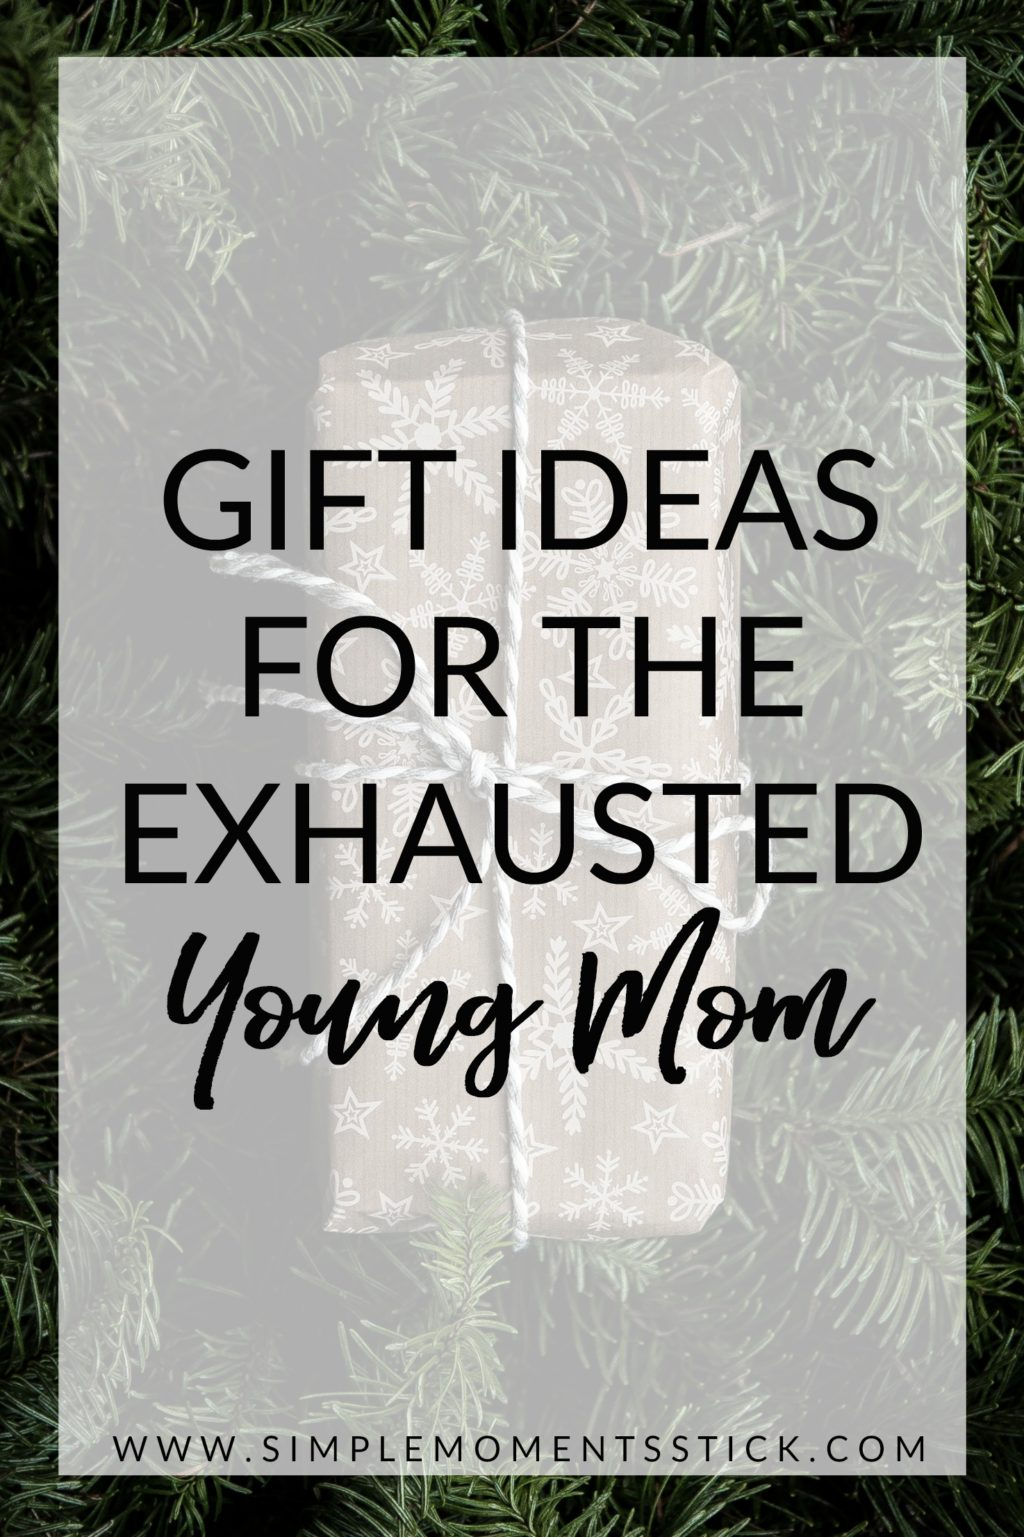 The perfect gifts for moms with toddlers!